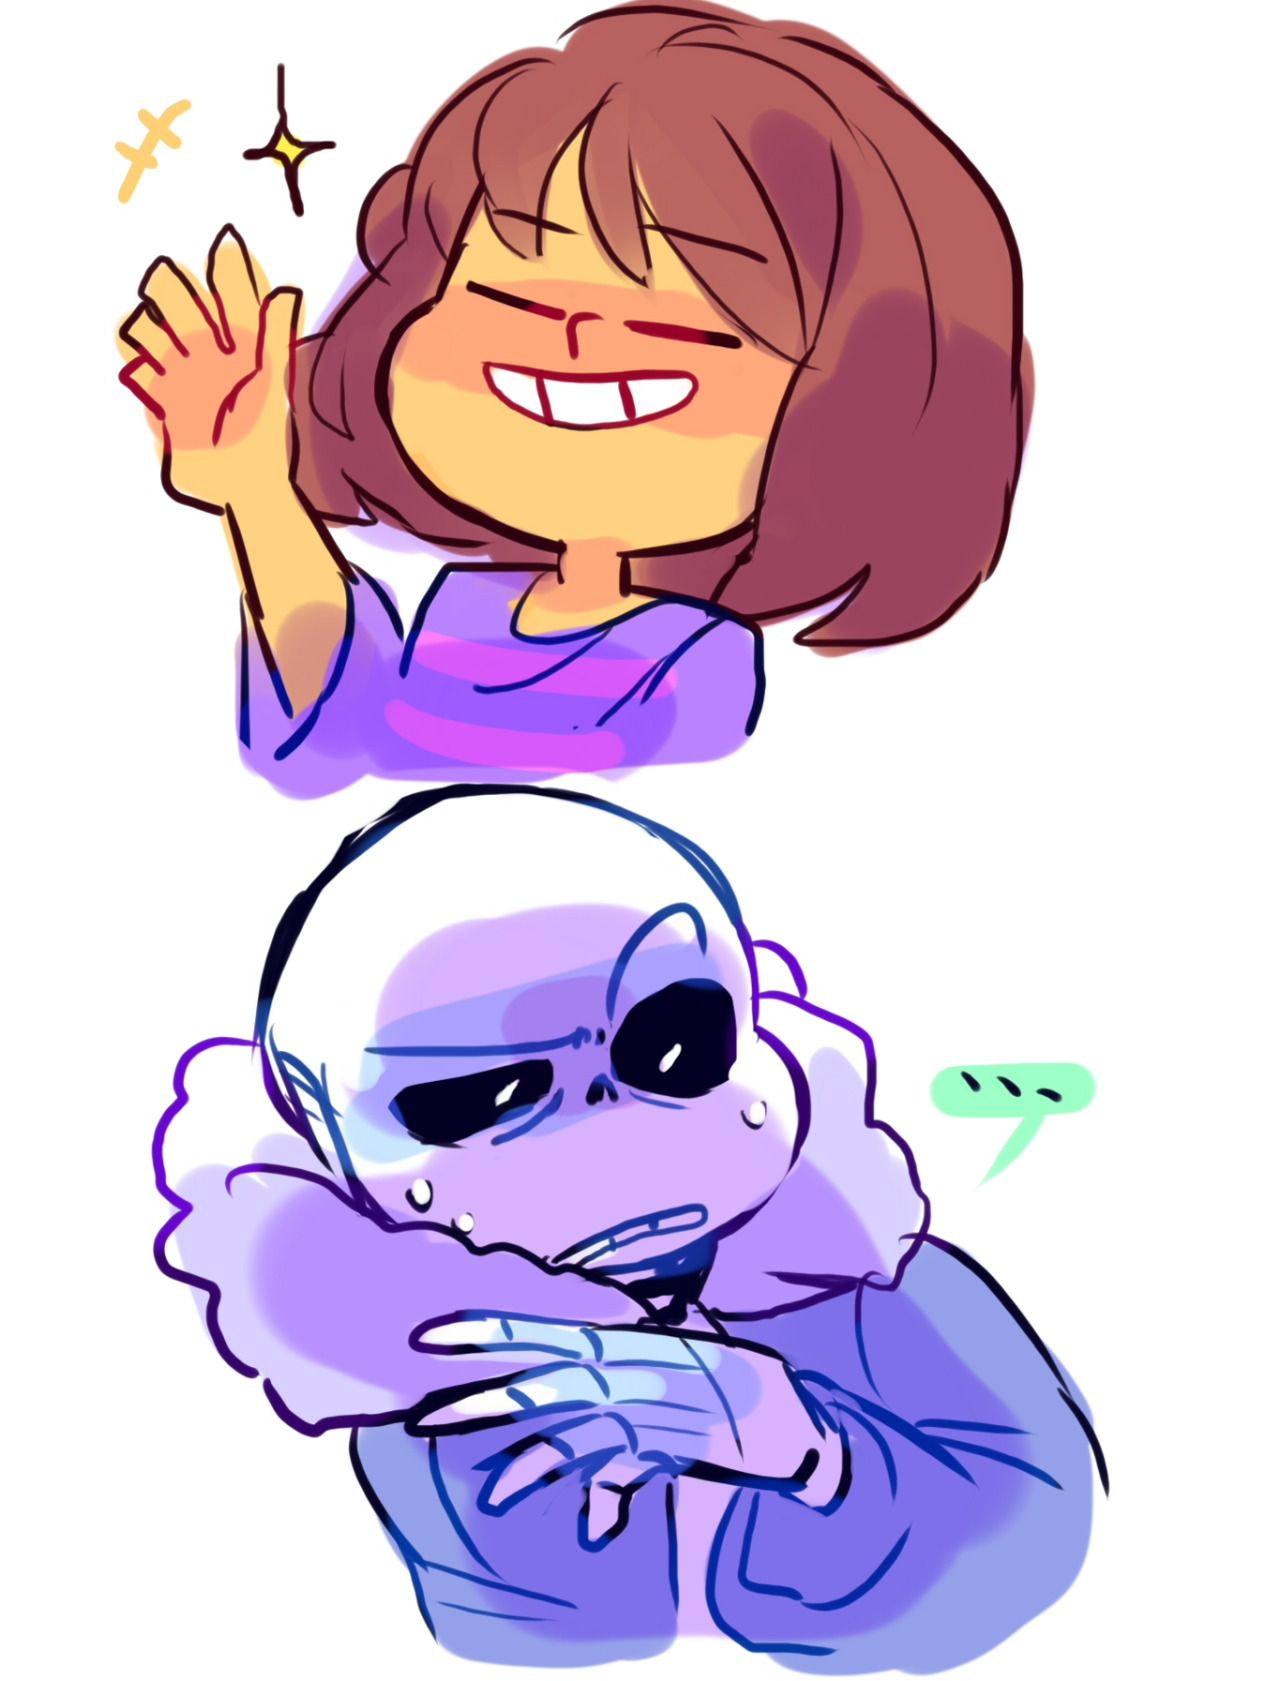 """ttoba: """" """"*…rUDE """" What if """"In skeleton culture, this is considered a dick move."""" Also, I really wanted to see offended/annoyed Sans. """""""